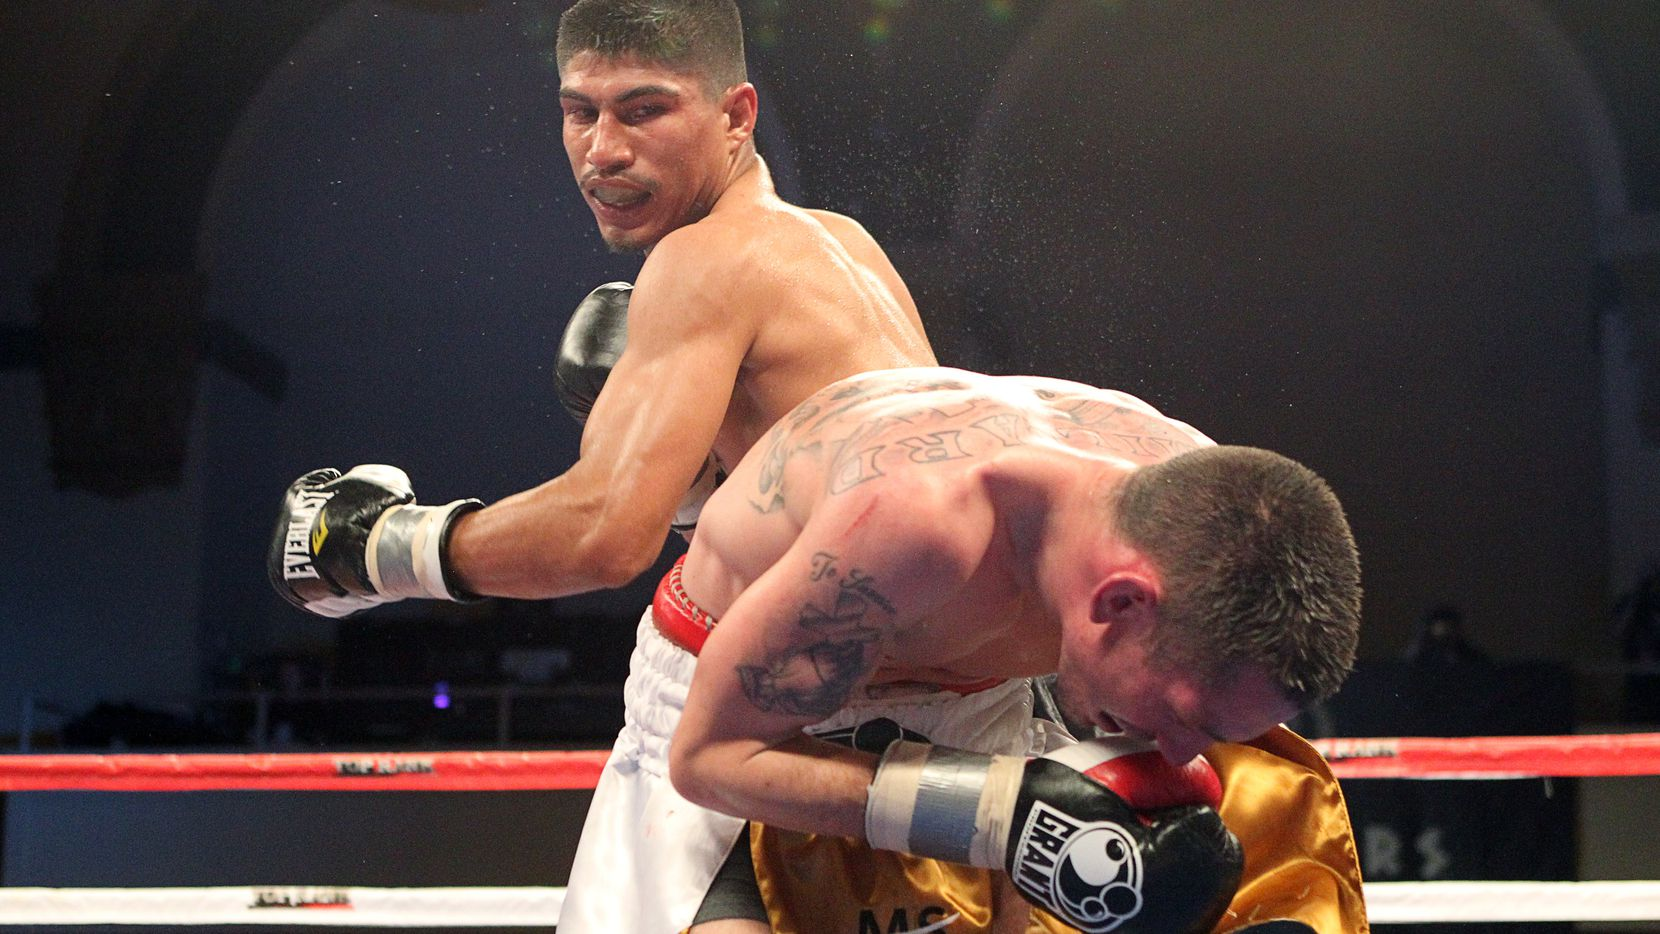 """ATLANTIC CITY, NJ - MARCH 26: Miguel Angel Garcia punches Matt Remillard during their NABF NABO Featherweight title fight during Top Rank's """"Featherweight Fury"""" on March 26, 2011 at Boardwalk Hall in Atlantic City, New Jersey. (Photo by Hunter Martin/Getty Images)"""